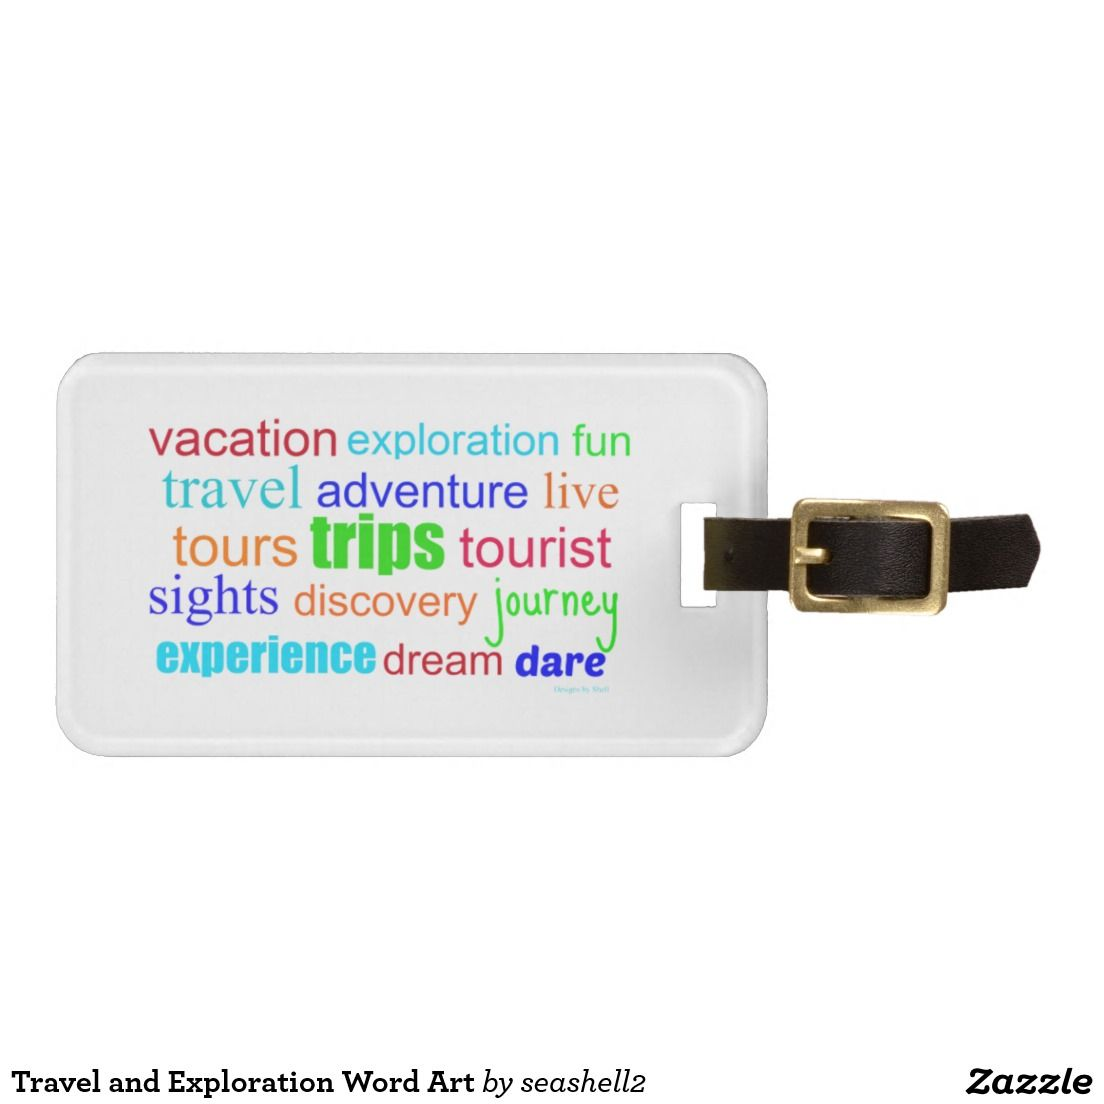 Travel and Exploration Word Art Bag Tag #travel #luggagetag #adventures